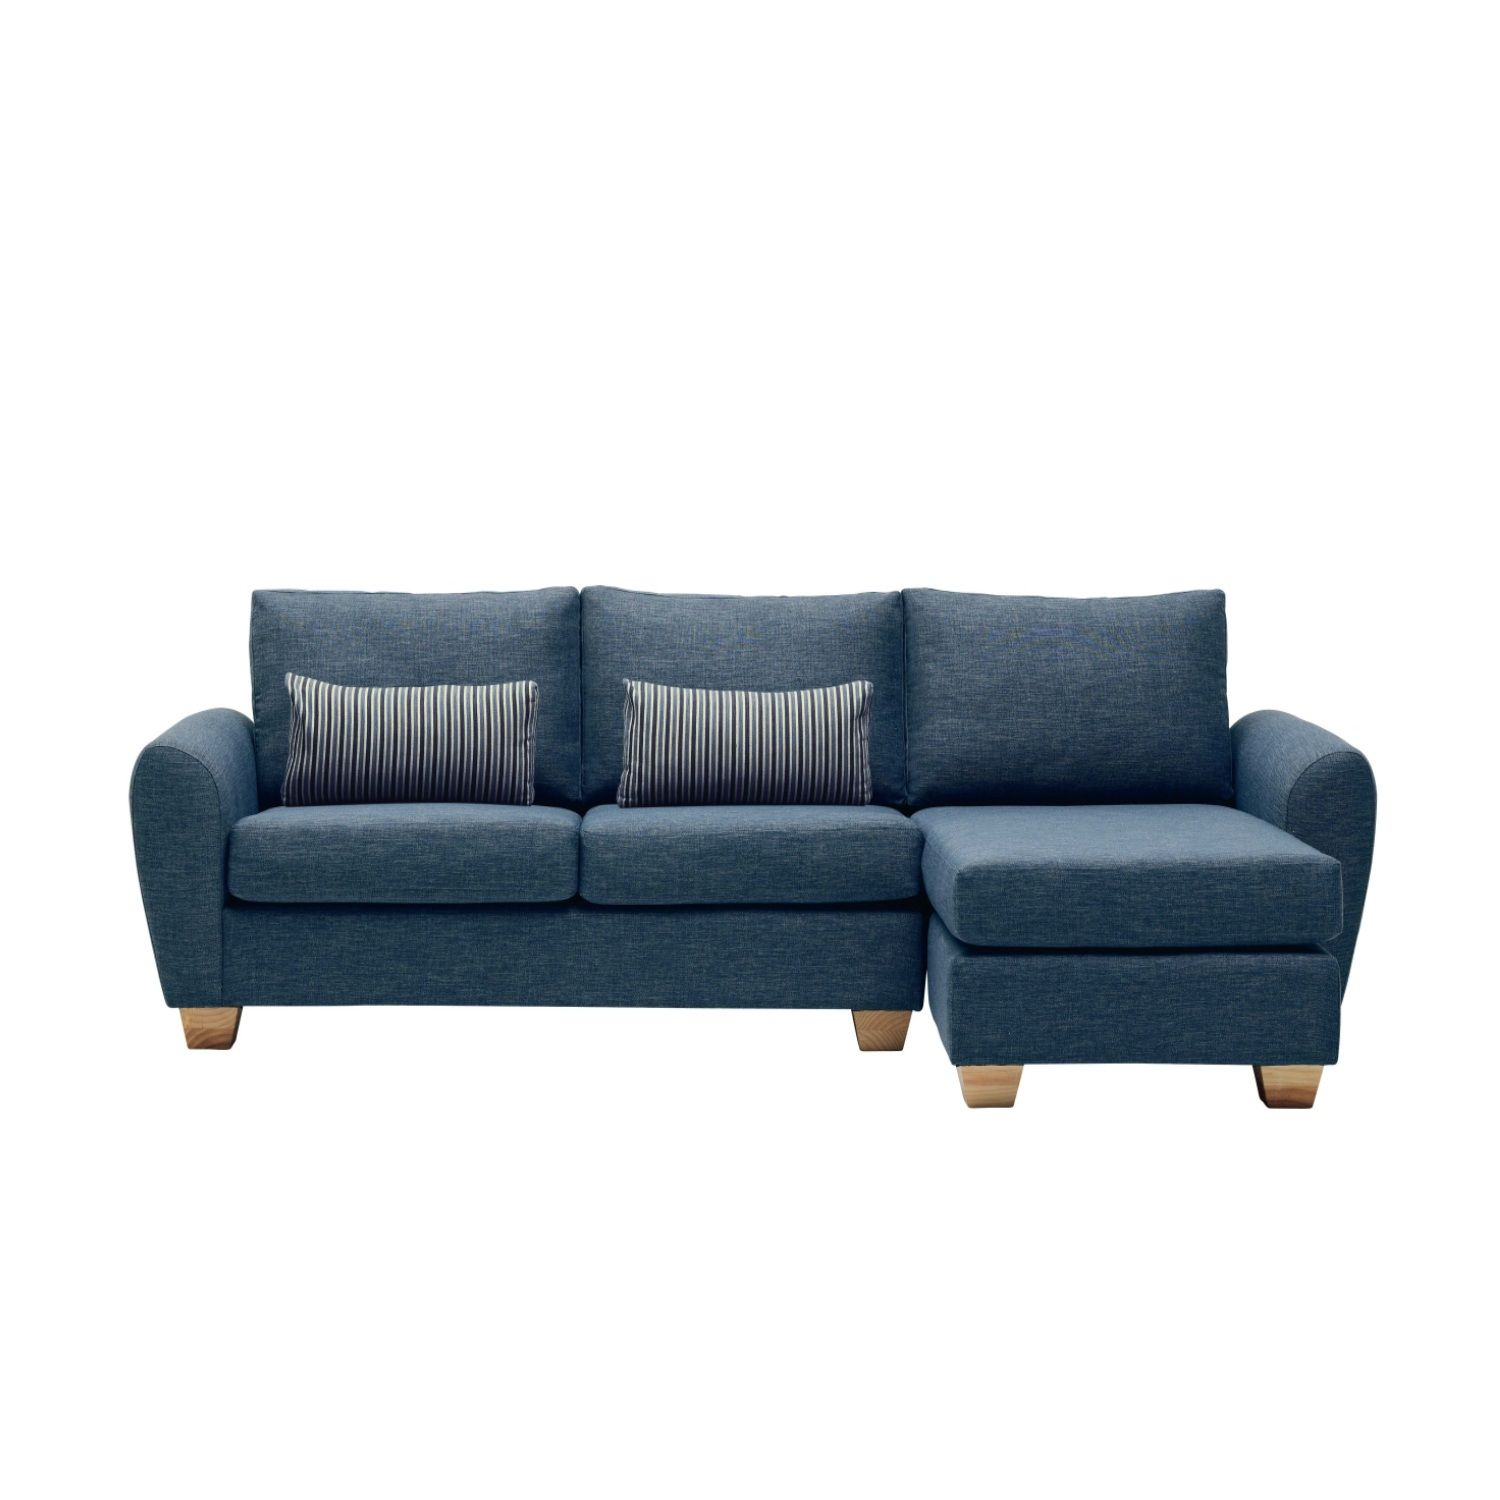 Magnificent Options 2 5 Seater Fabric Sofa With Chaise From Domayne Pabps2019 Chair Design Images Pabps2019Com